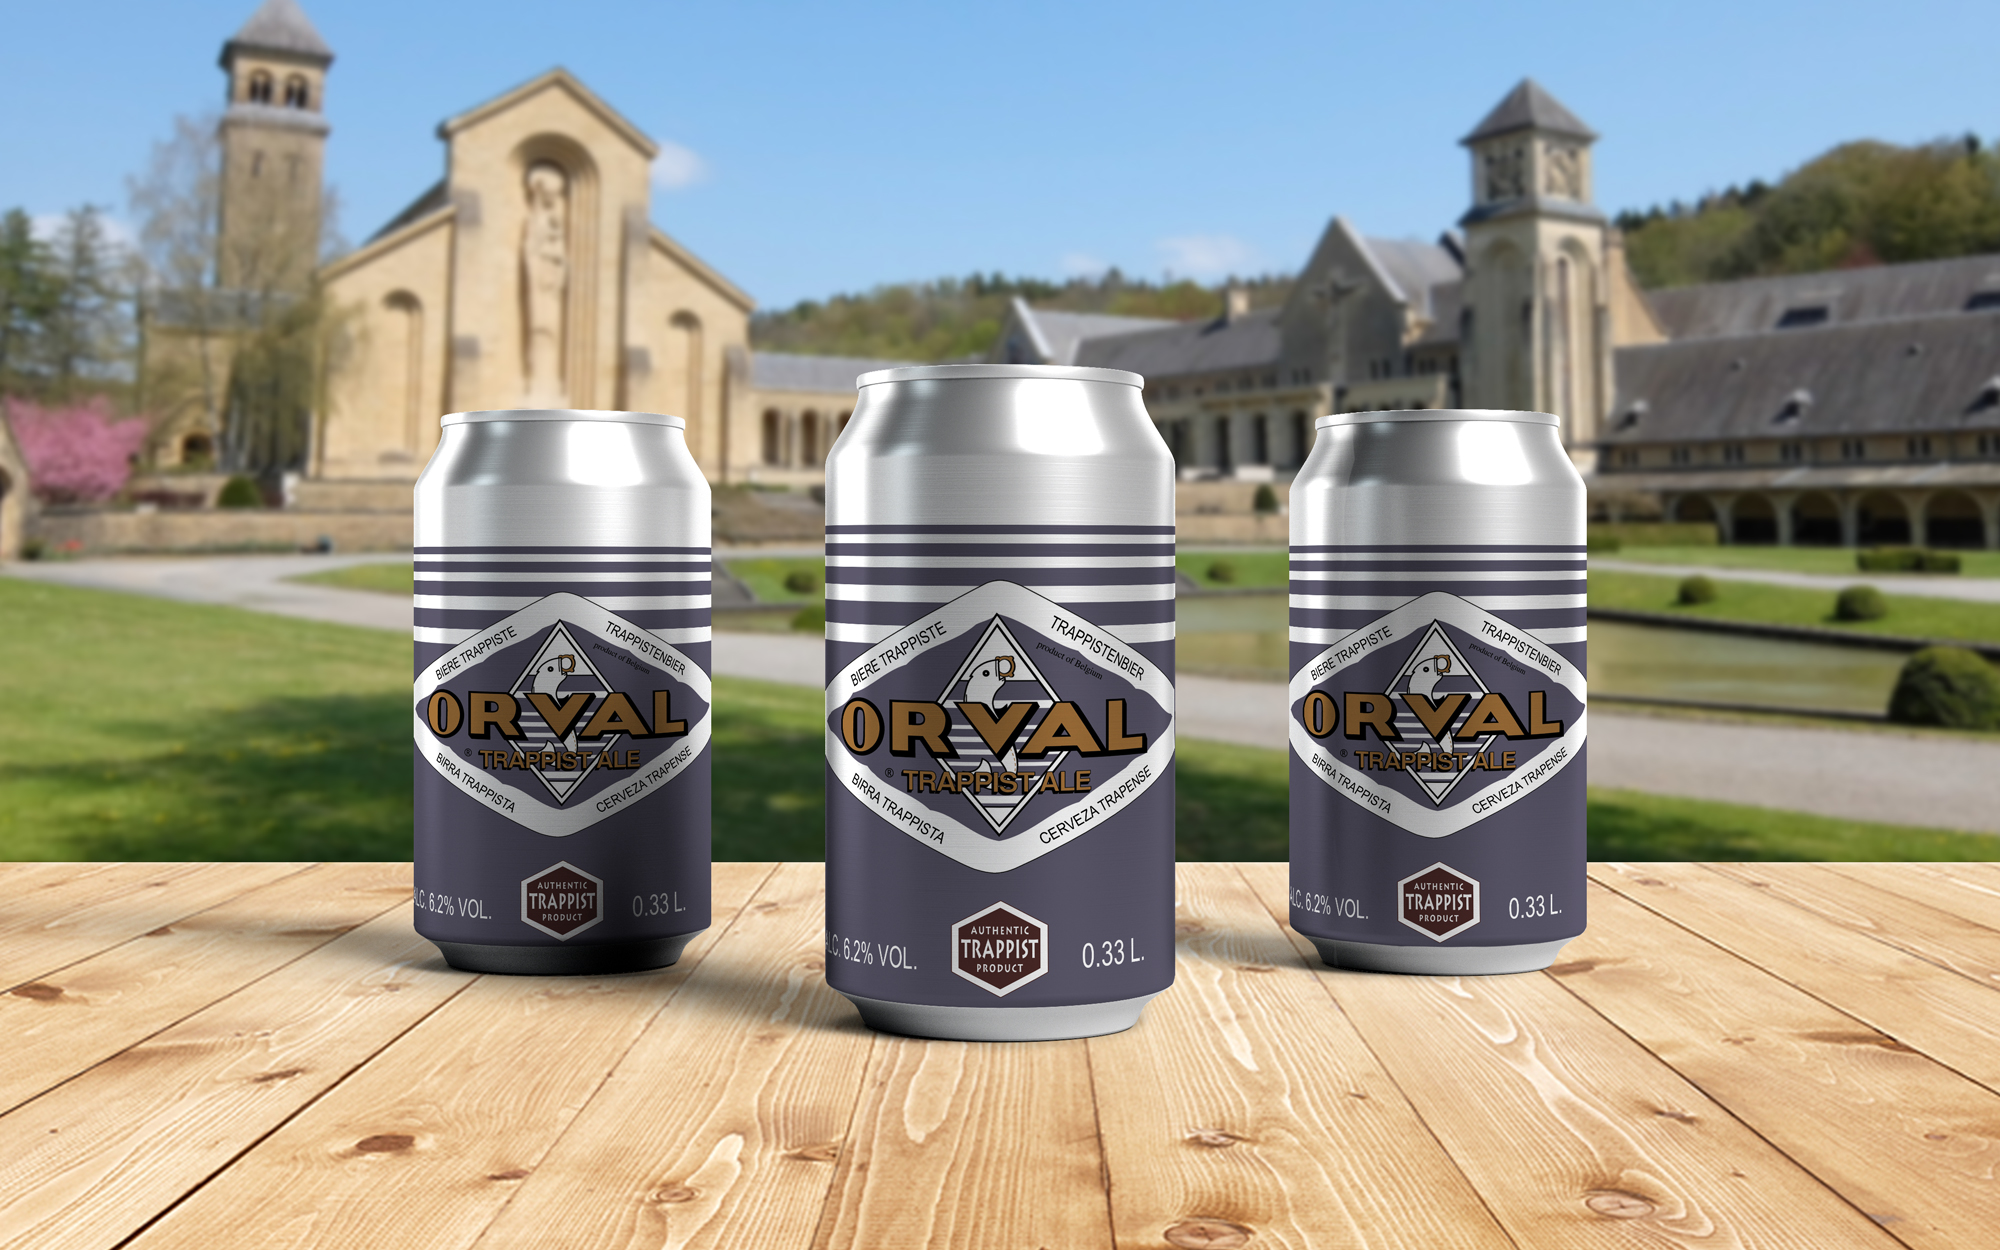 Orval Cans